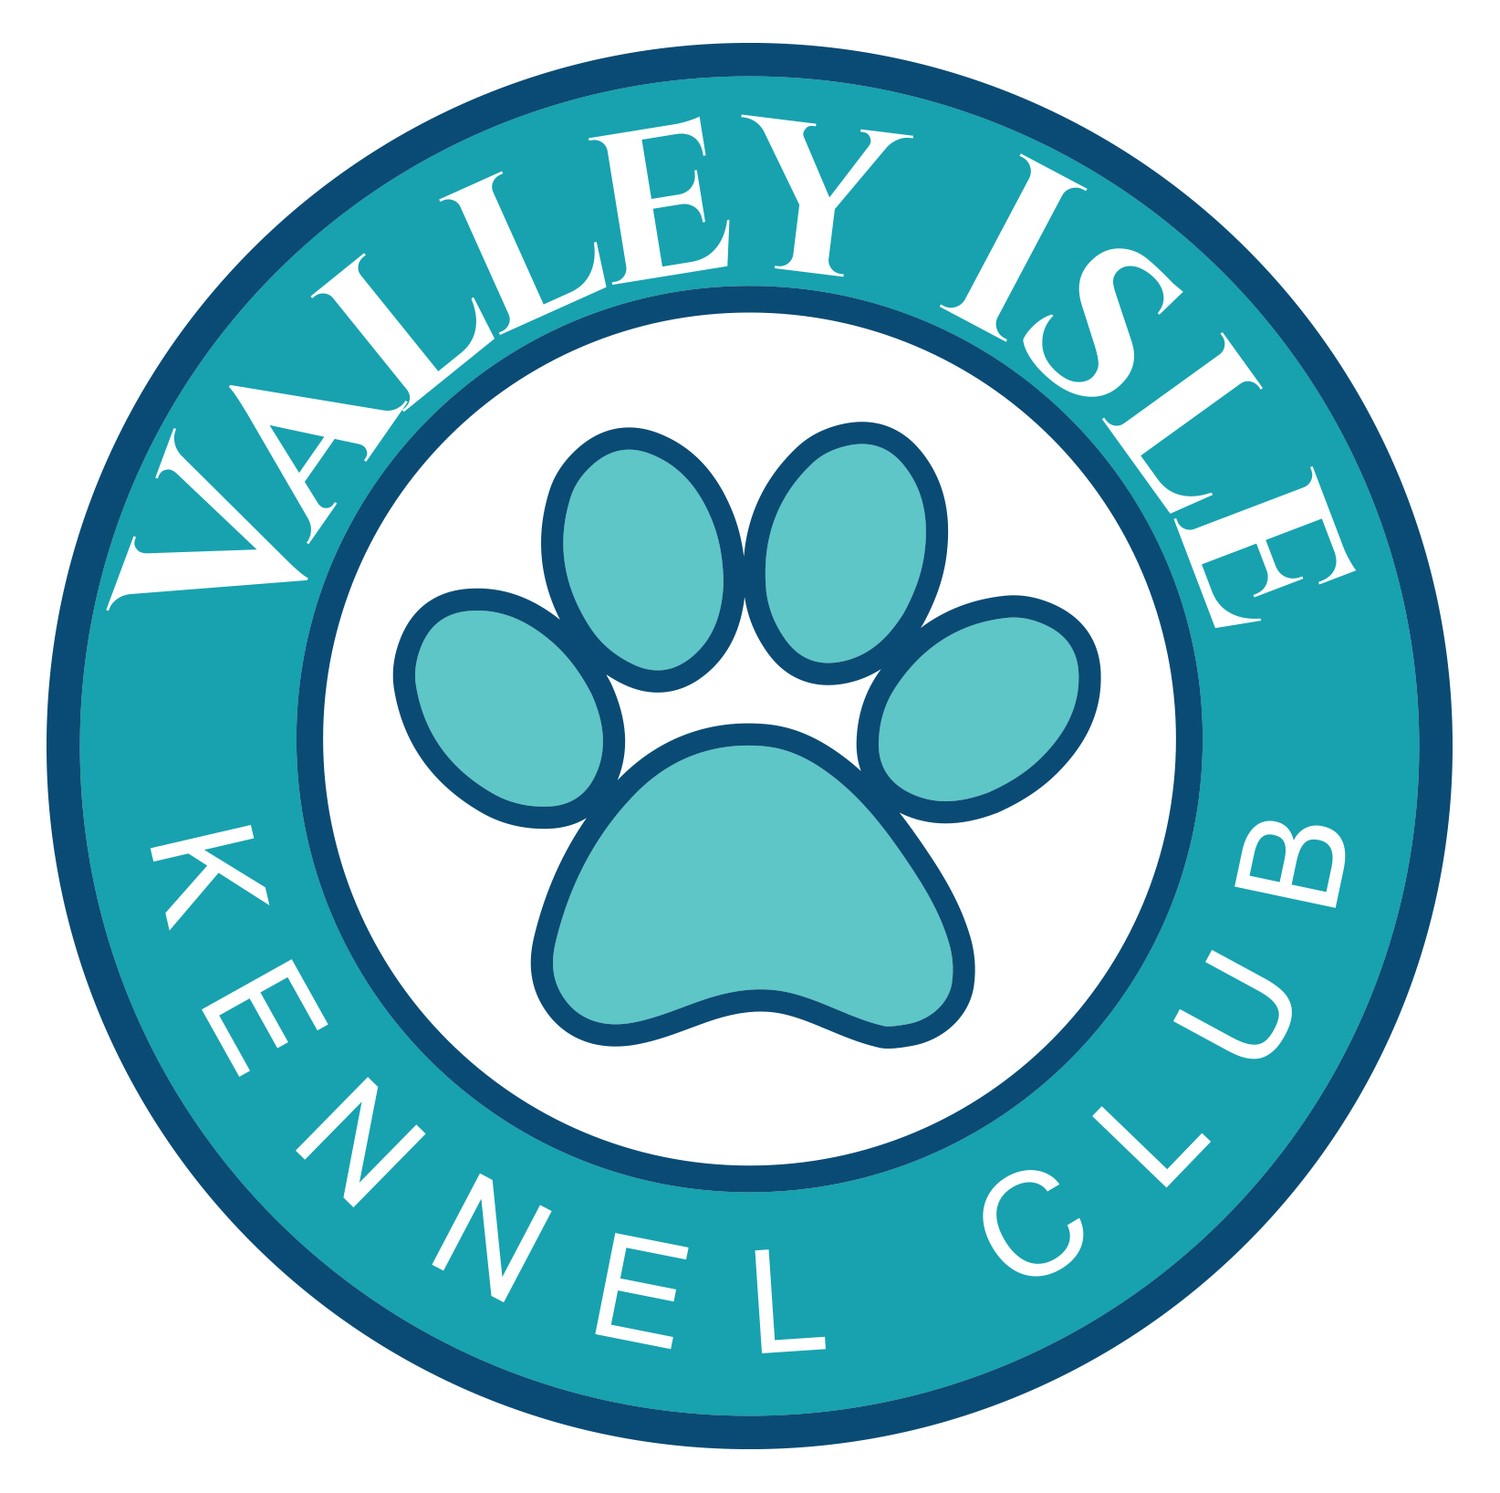 The valley isle clipart clipart royalty free download Valley Isle Kennel Club clipart royalty free download